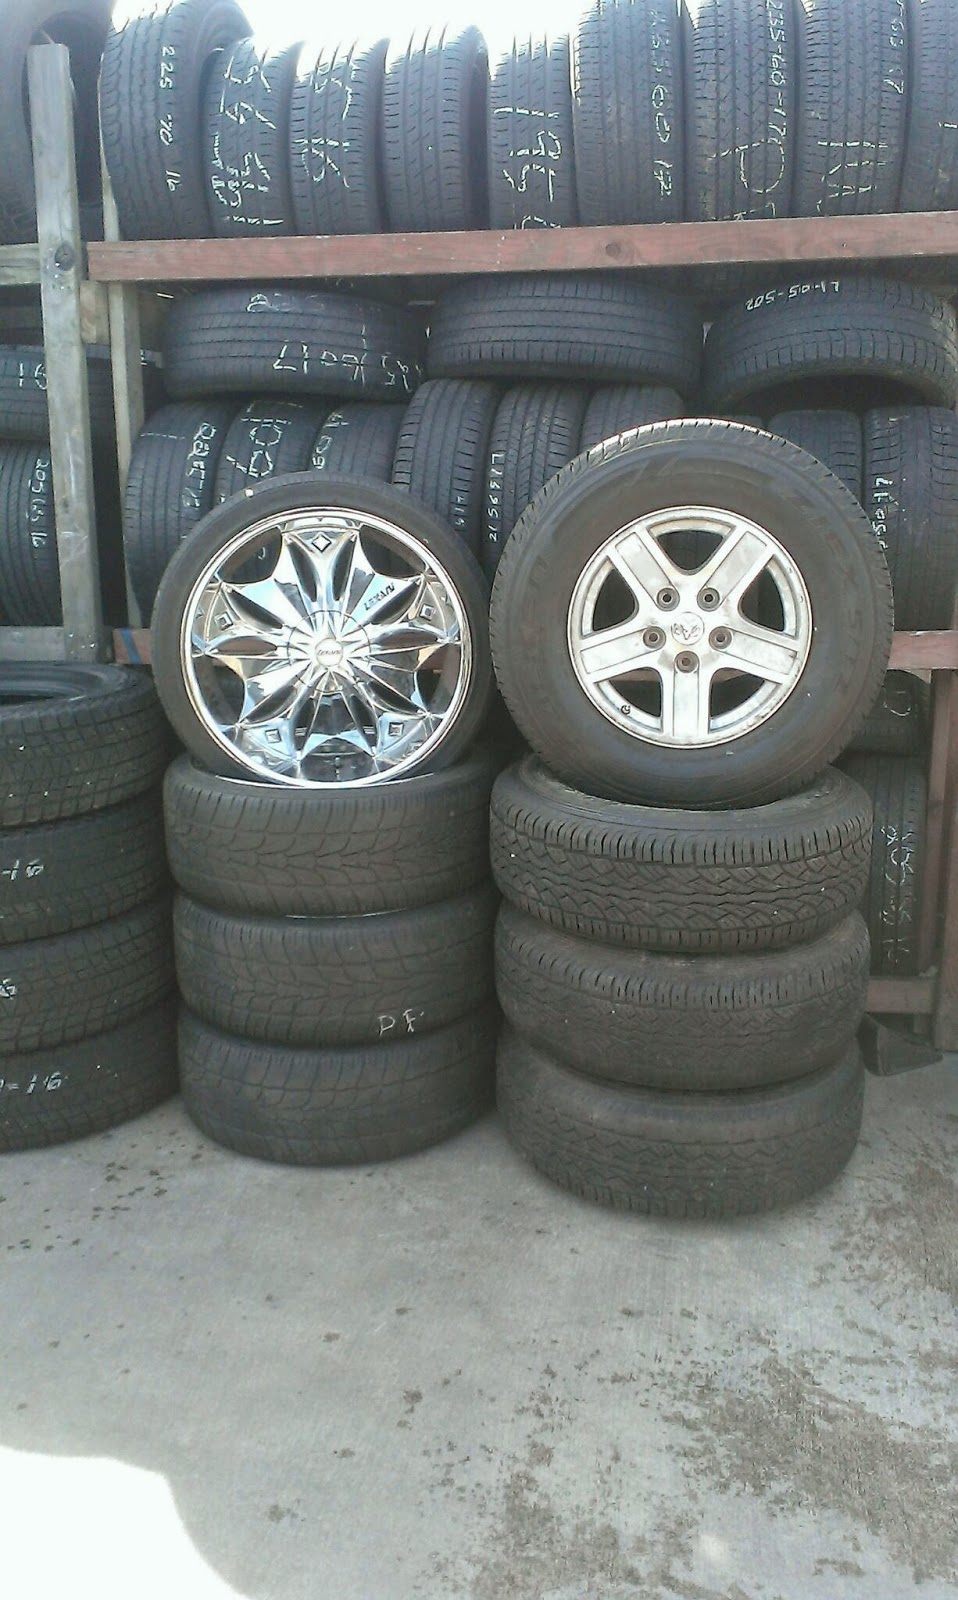 56 street tires home of the 18 used tire best prices on new tires in wa state 253 301 3843. Black Bedroom Furniture Sets. Home Design Ideas